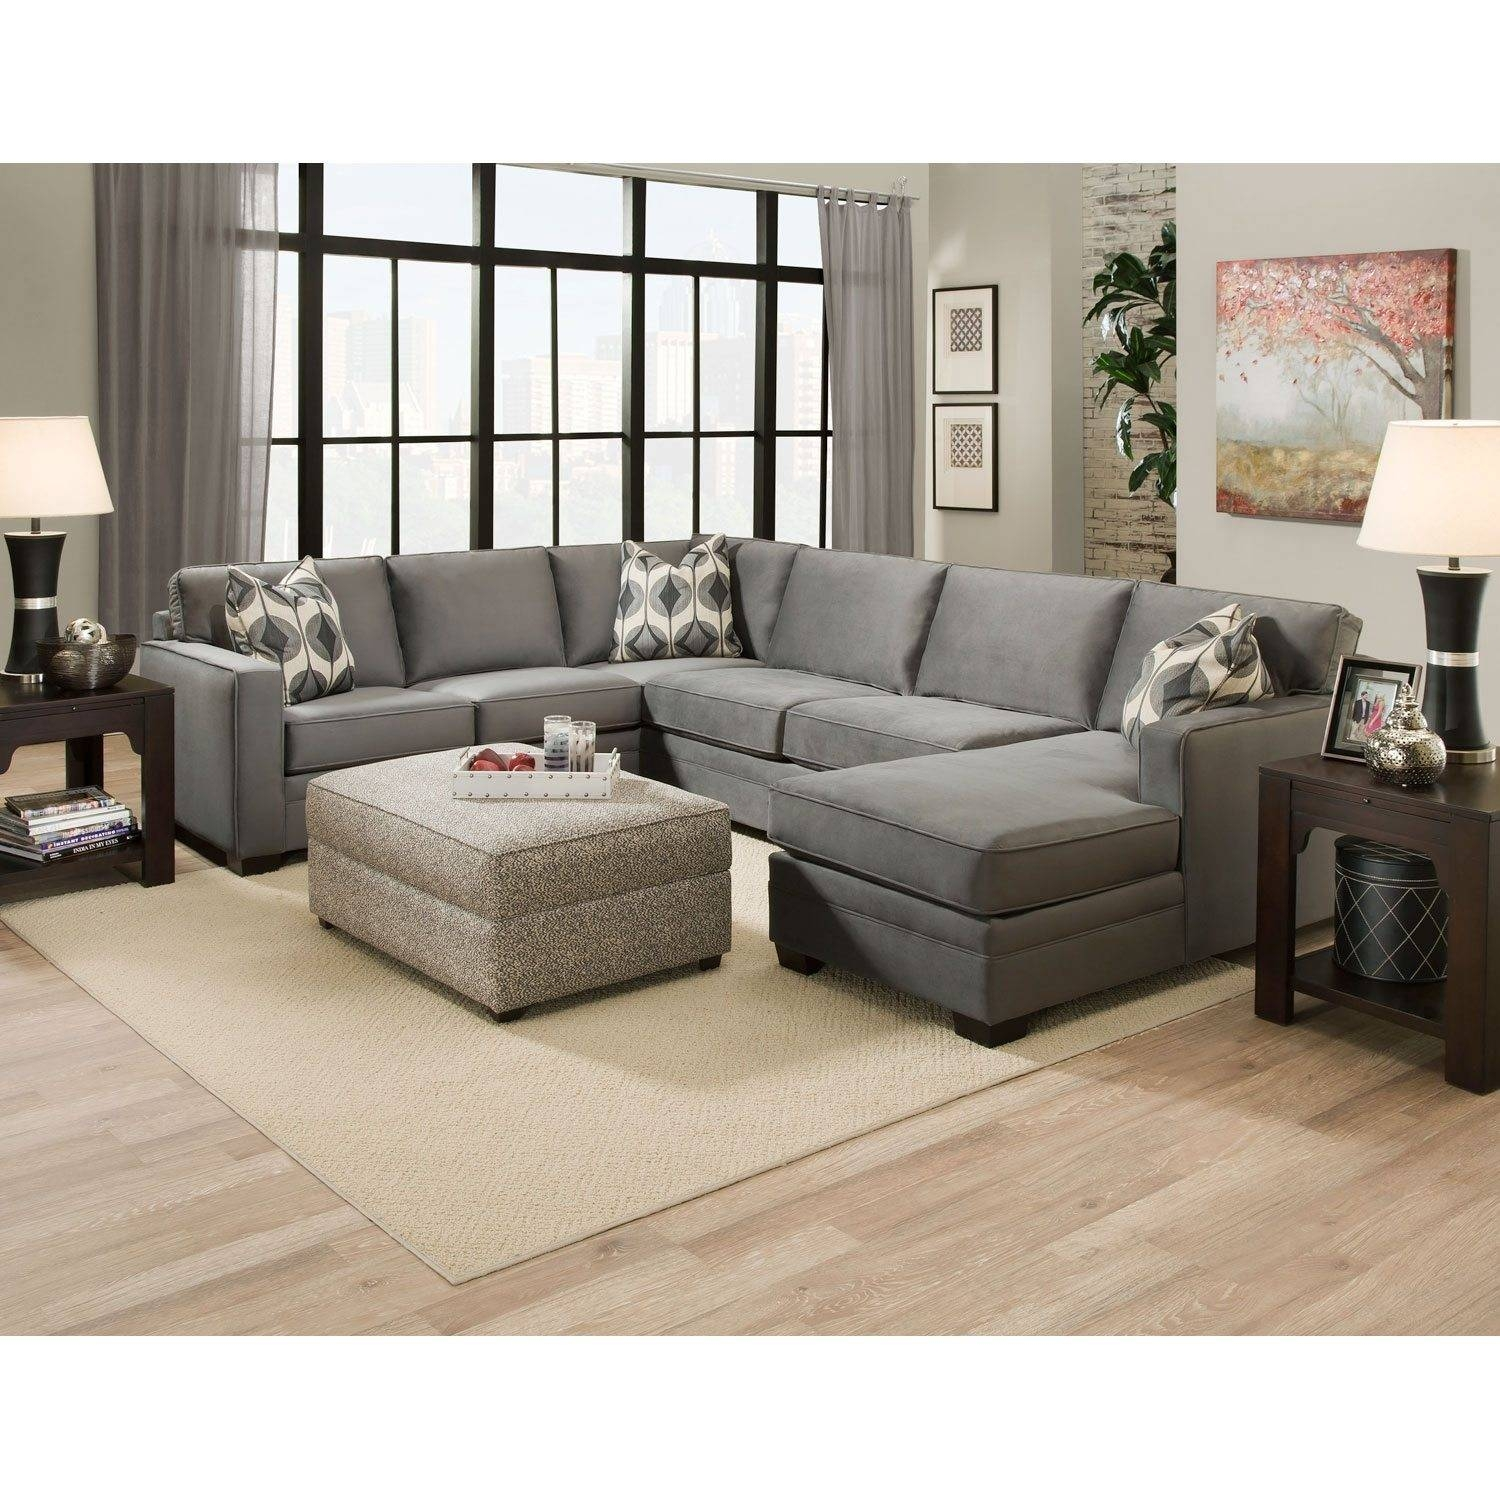 Furniture: Exciting Sectional Sofas Costco For Your Family Room Inside Bauhaus Sectional Sofas (View 9 of 30)